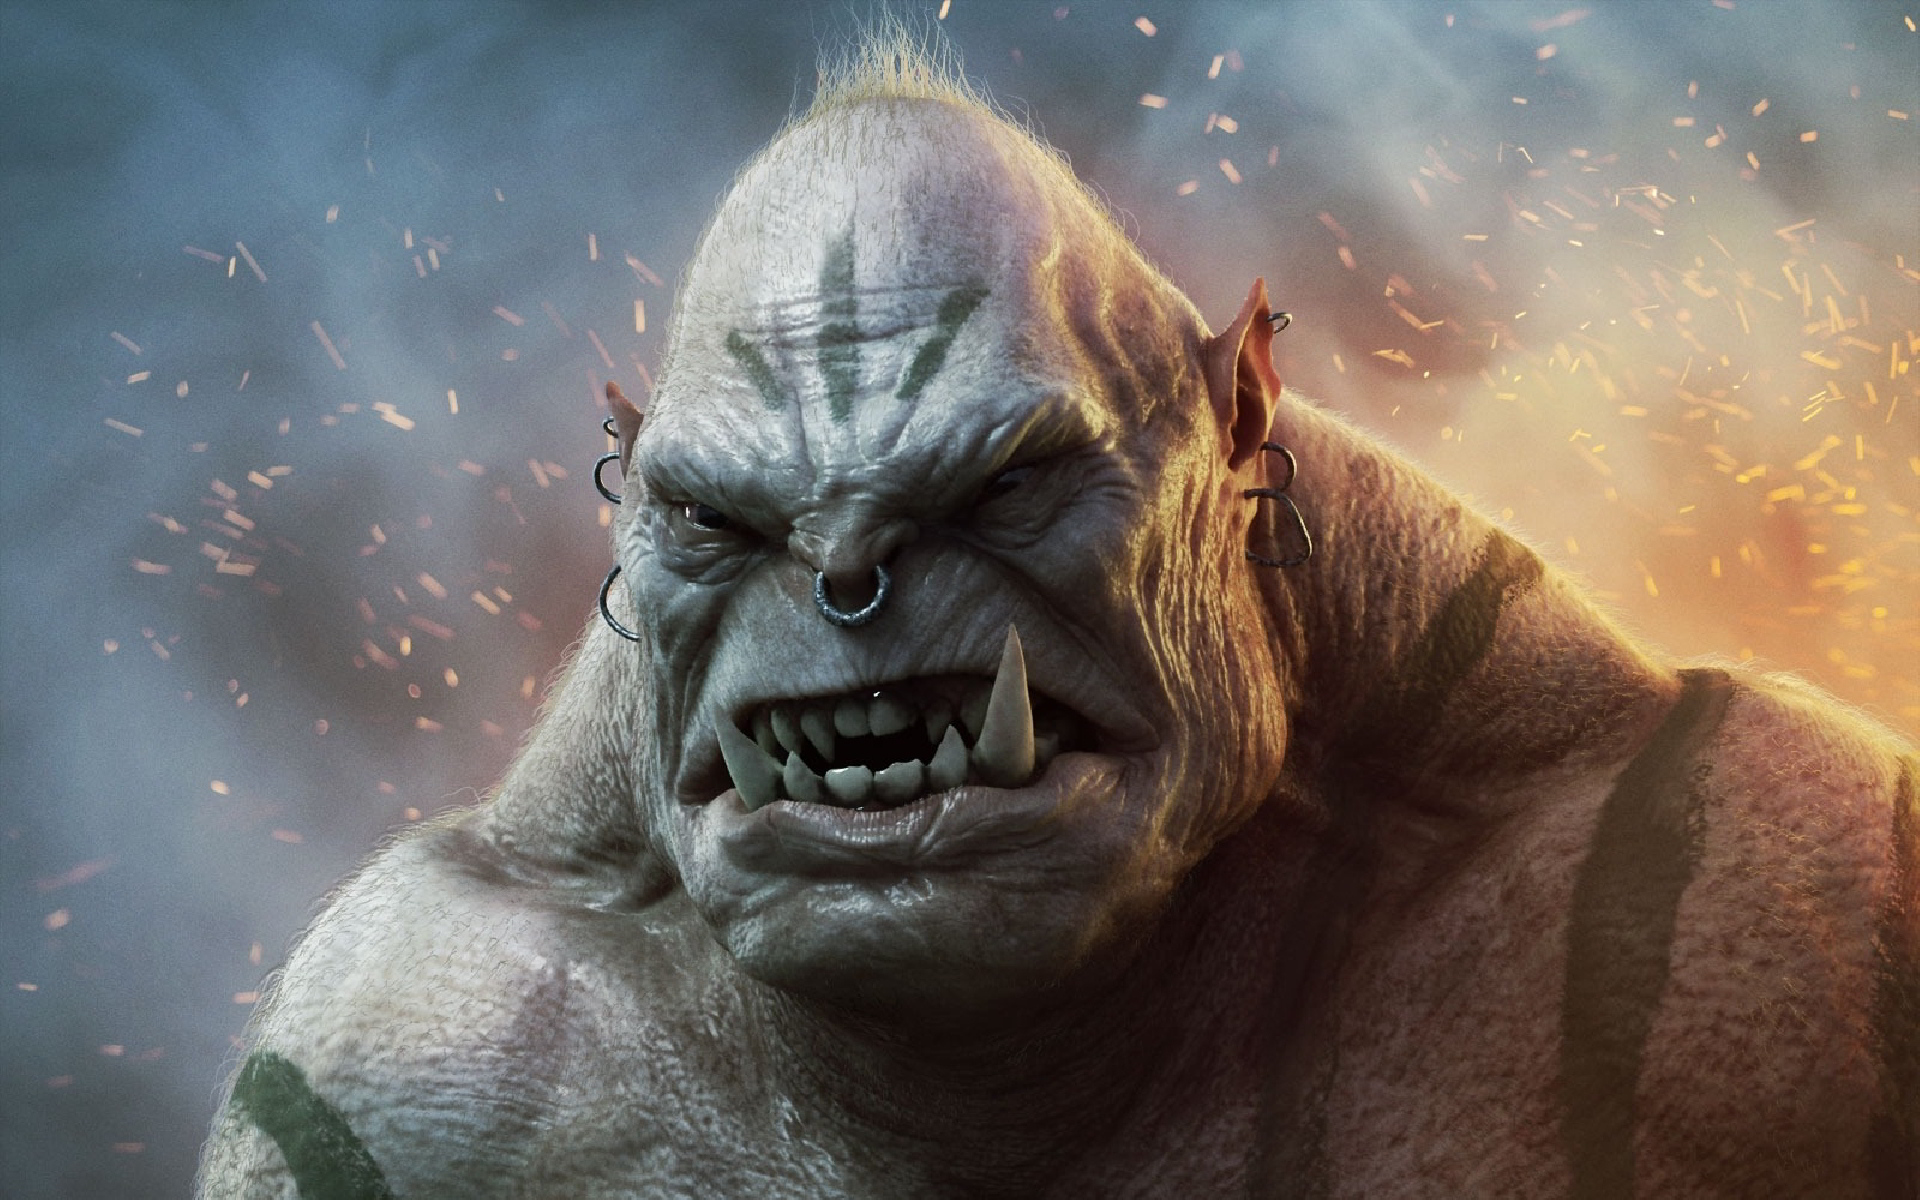 Angry Orc Art